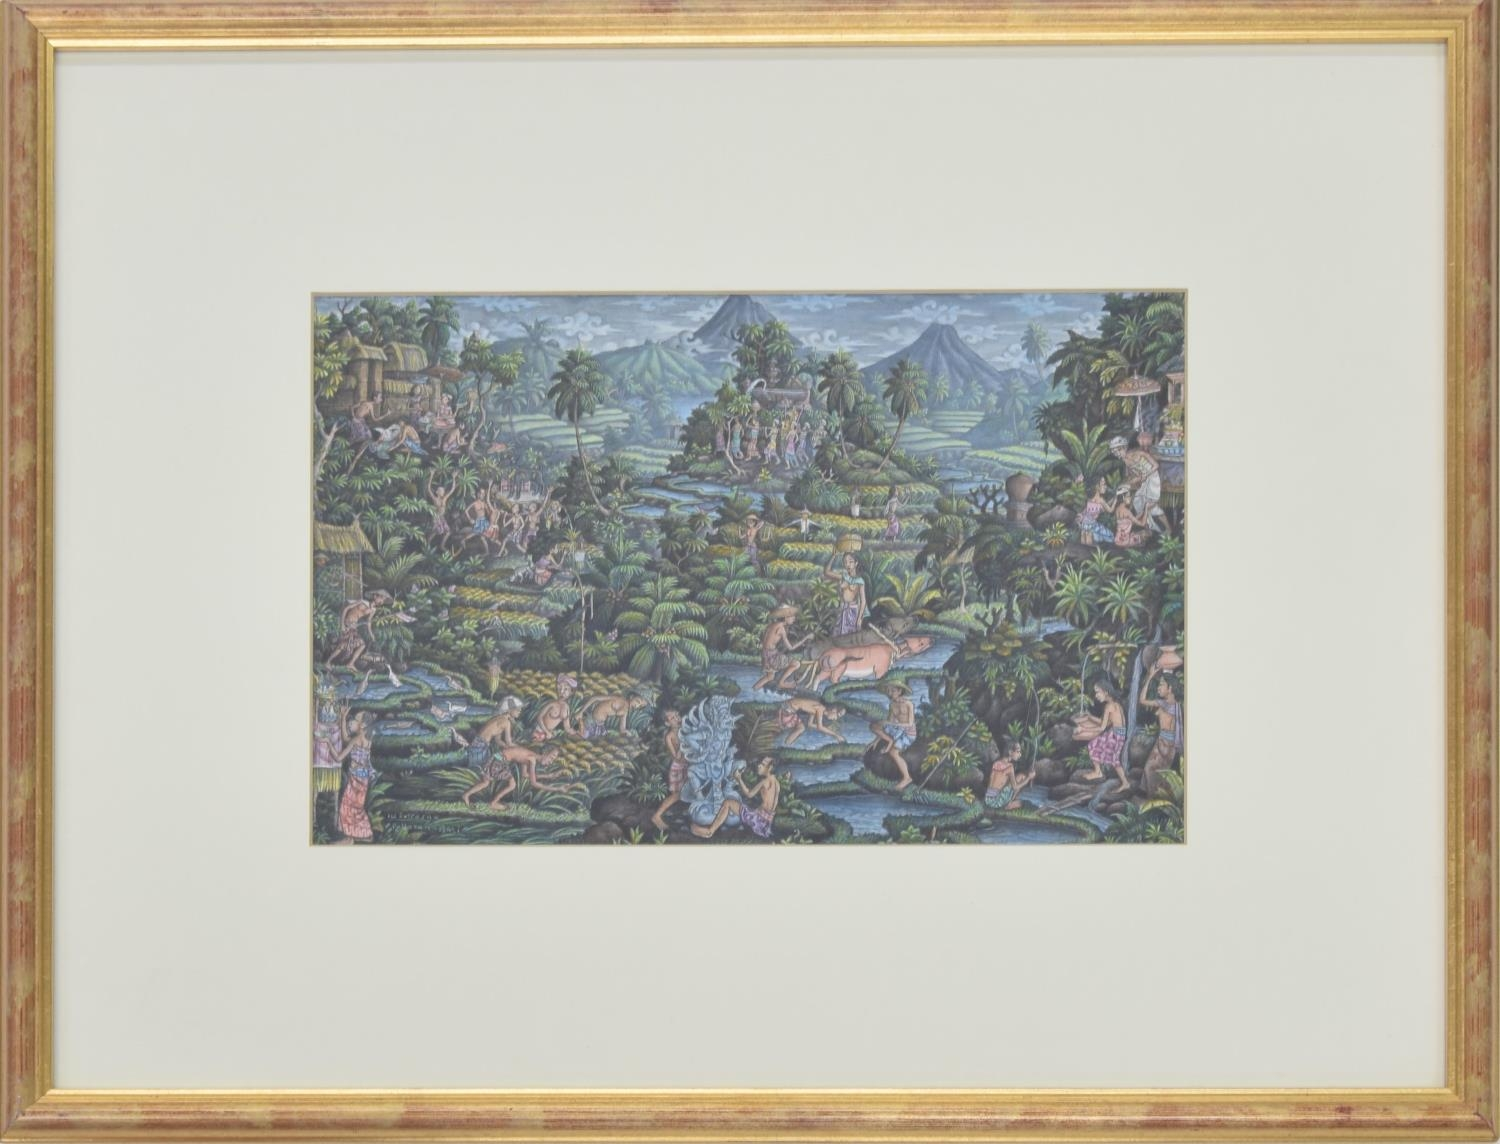 Loj Sutresna (20th century) (Balinese) - jungle scene with figures in a rice field, other figures